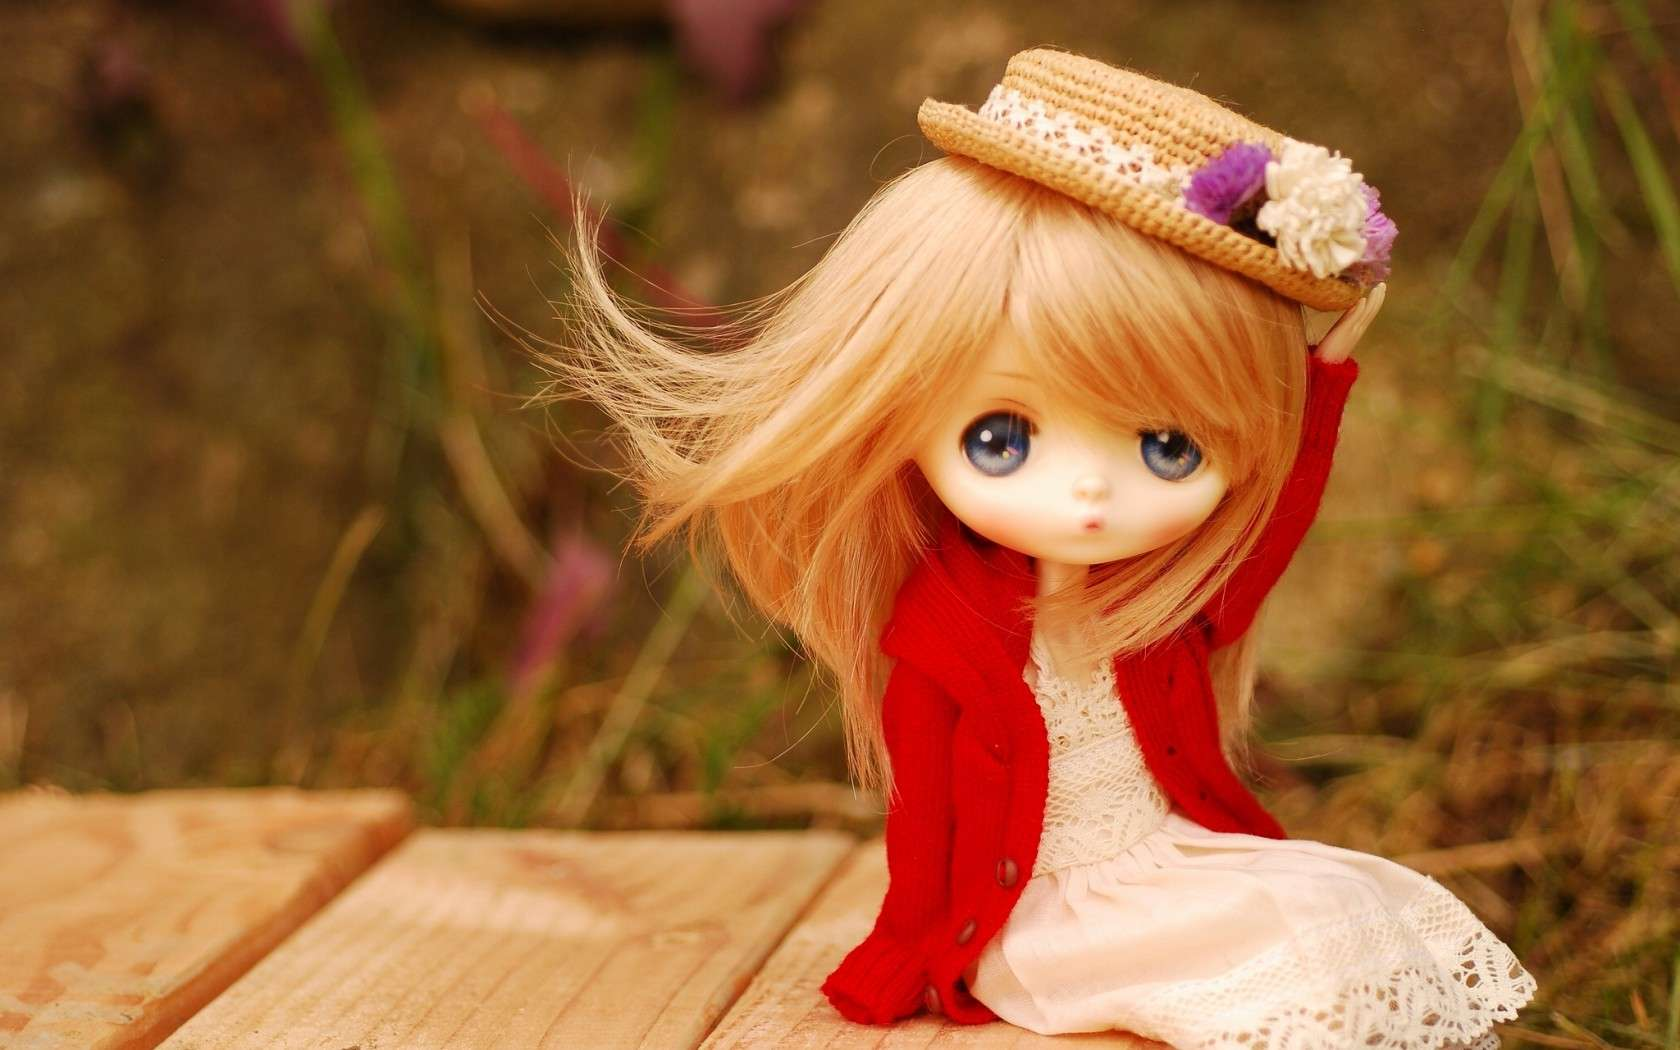 Doll Hd Wallpapers 2 : Hd Wallpapers